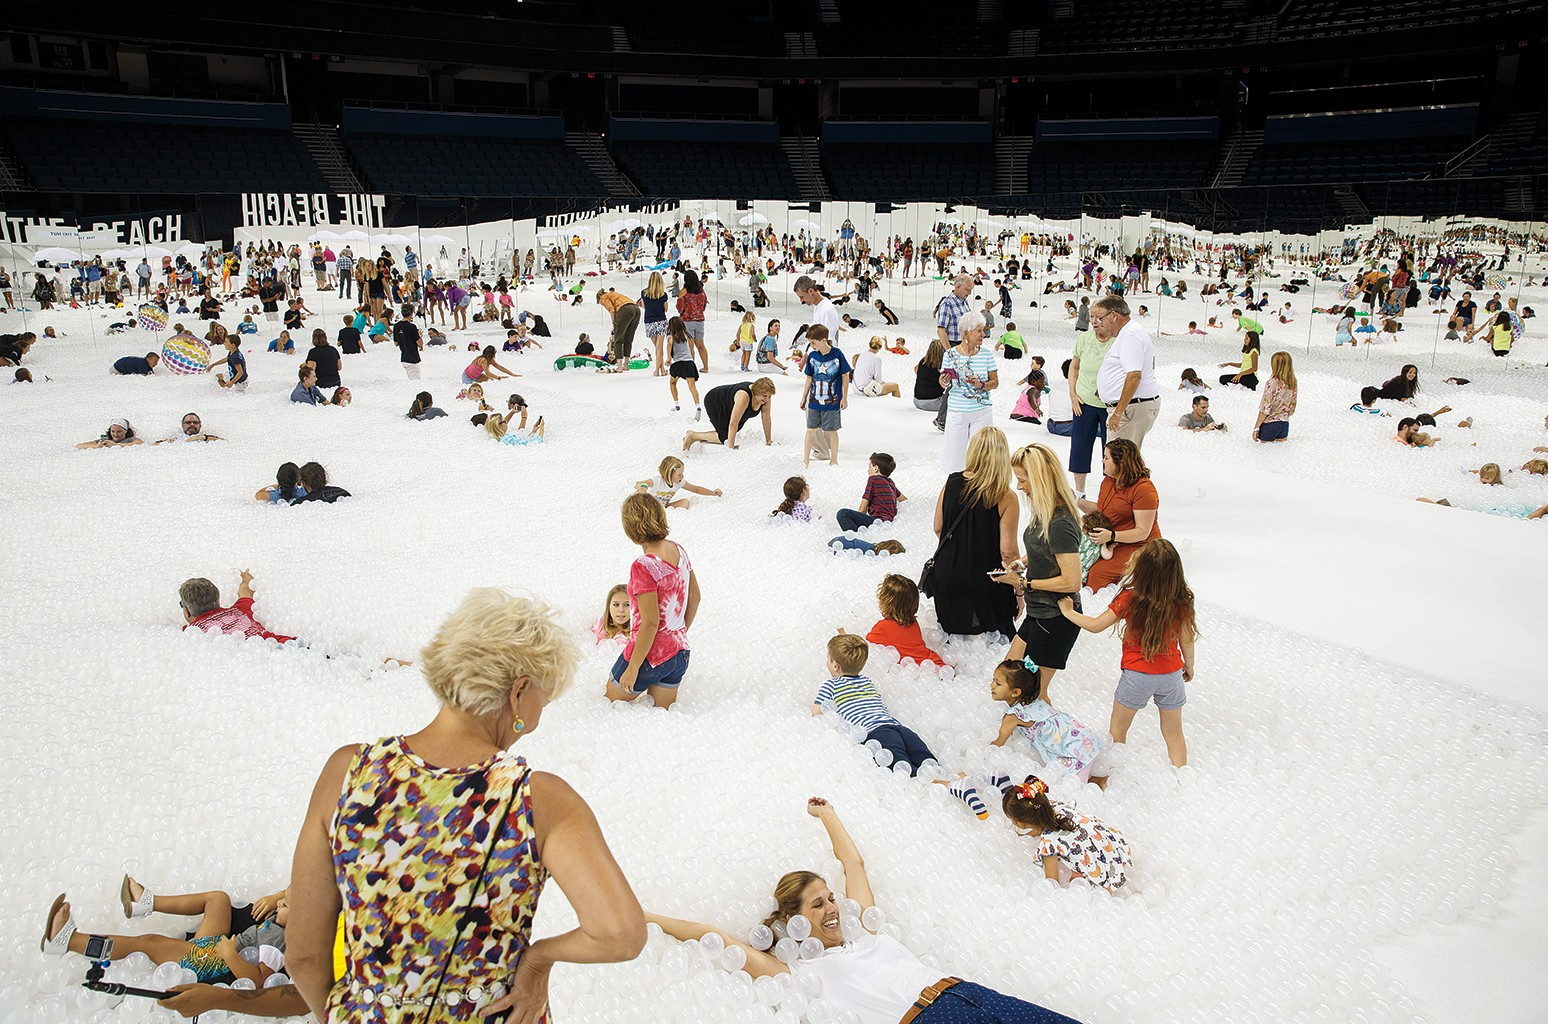 """The """"Beach"""" exhibit at Amalie Arena in Tampa, Fla."""